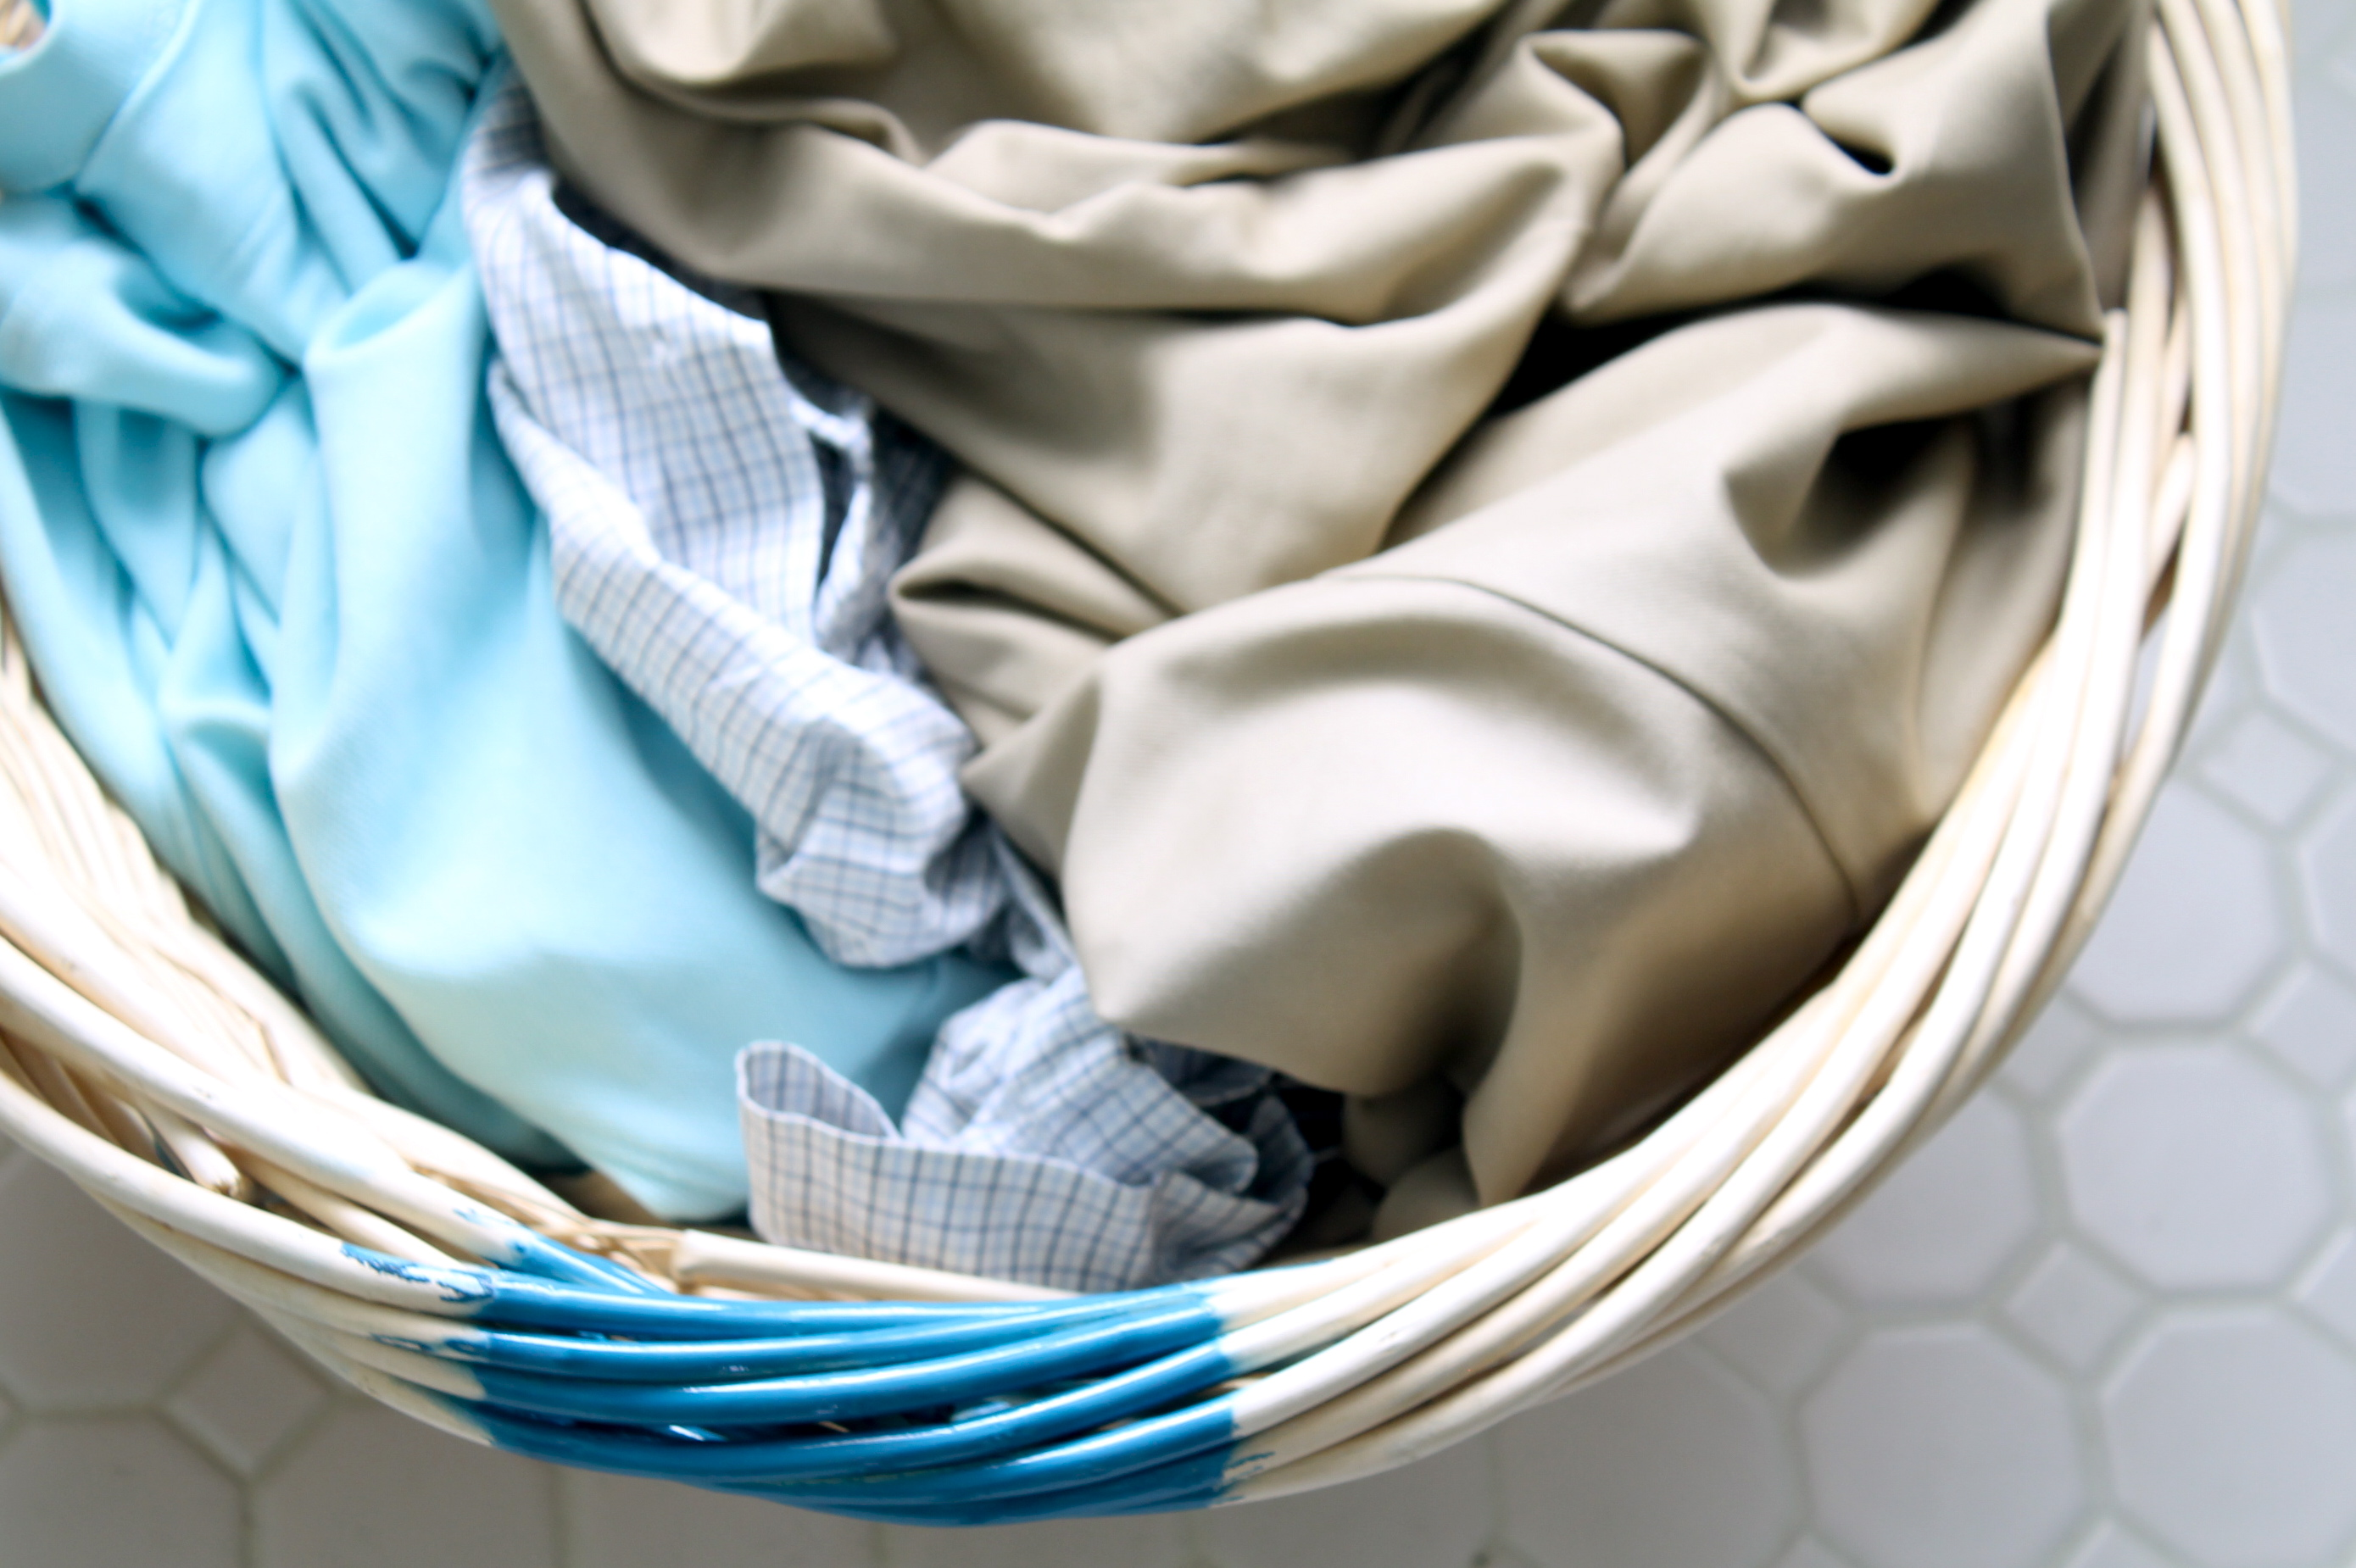 Color-coded laundry basket - The 2 Seasons